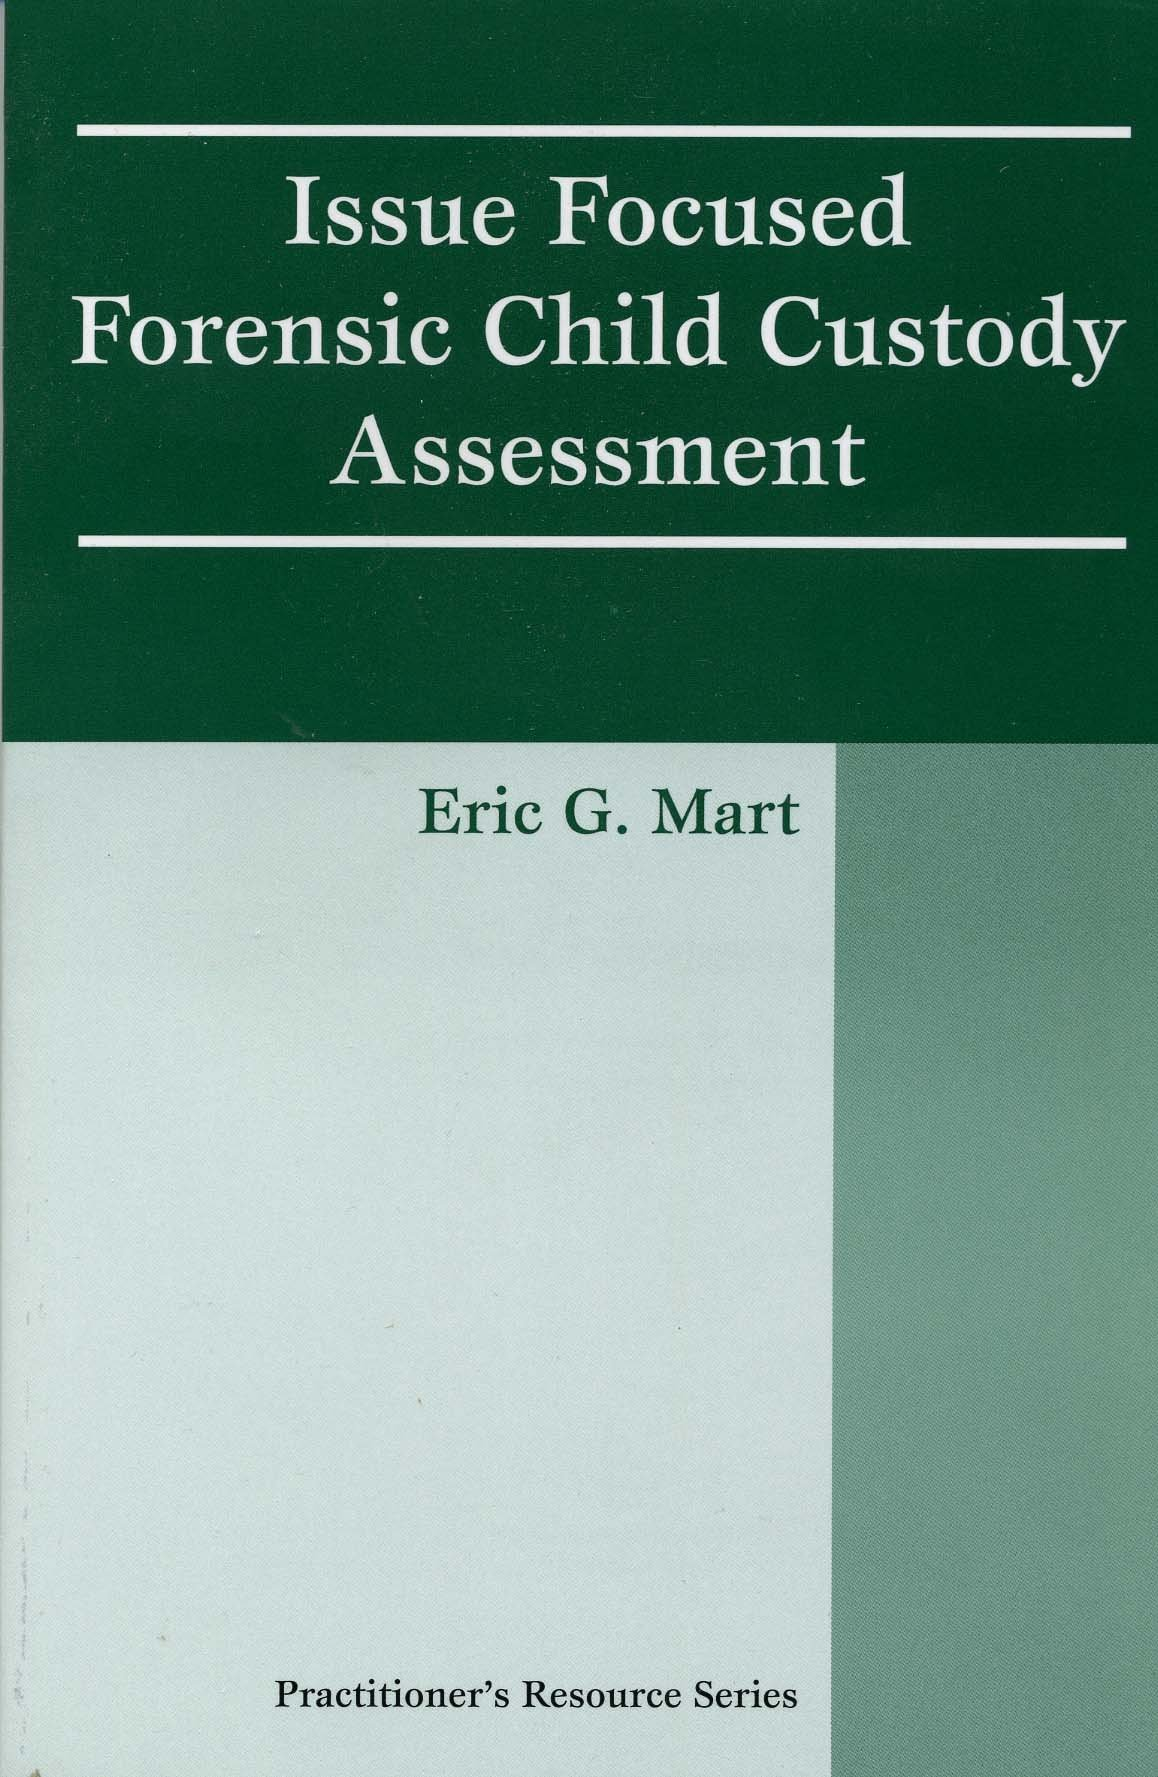 Download Issue Focused Forensic Child Custody Assessment (Practitioner's Resource Series) pdf